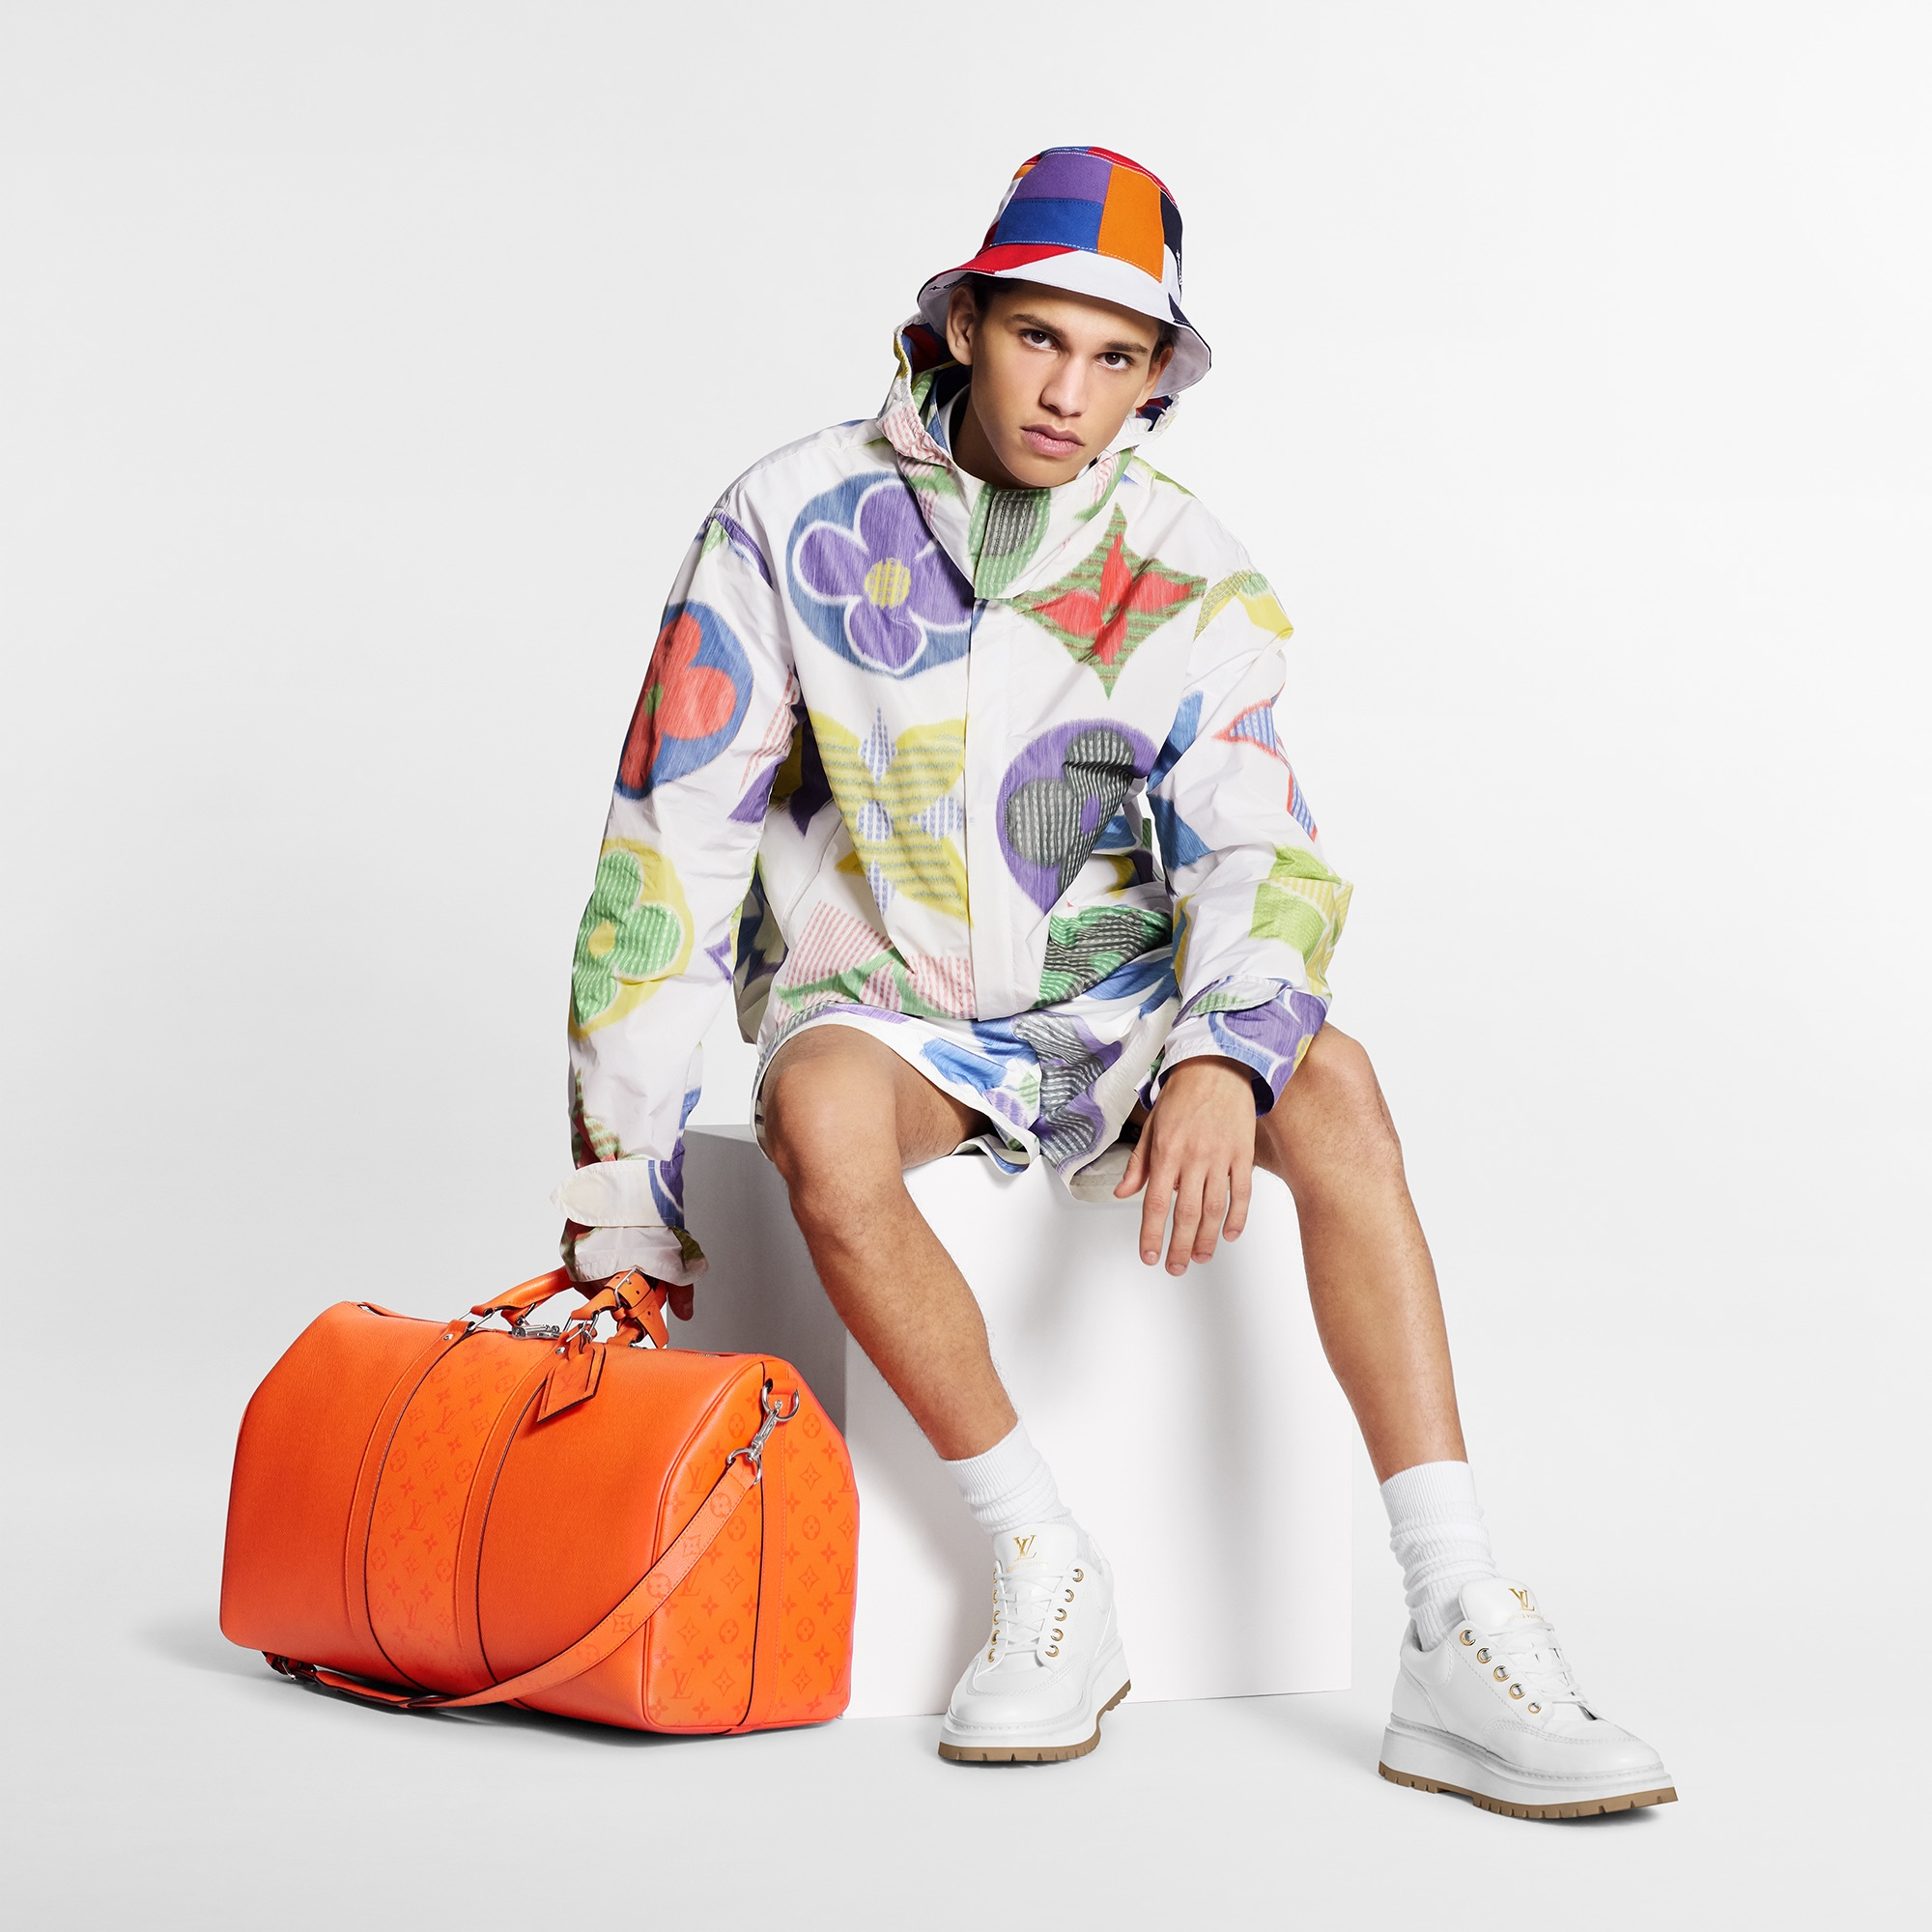 Louis Vuitton drop their latest Summer 20 capsule collection